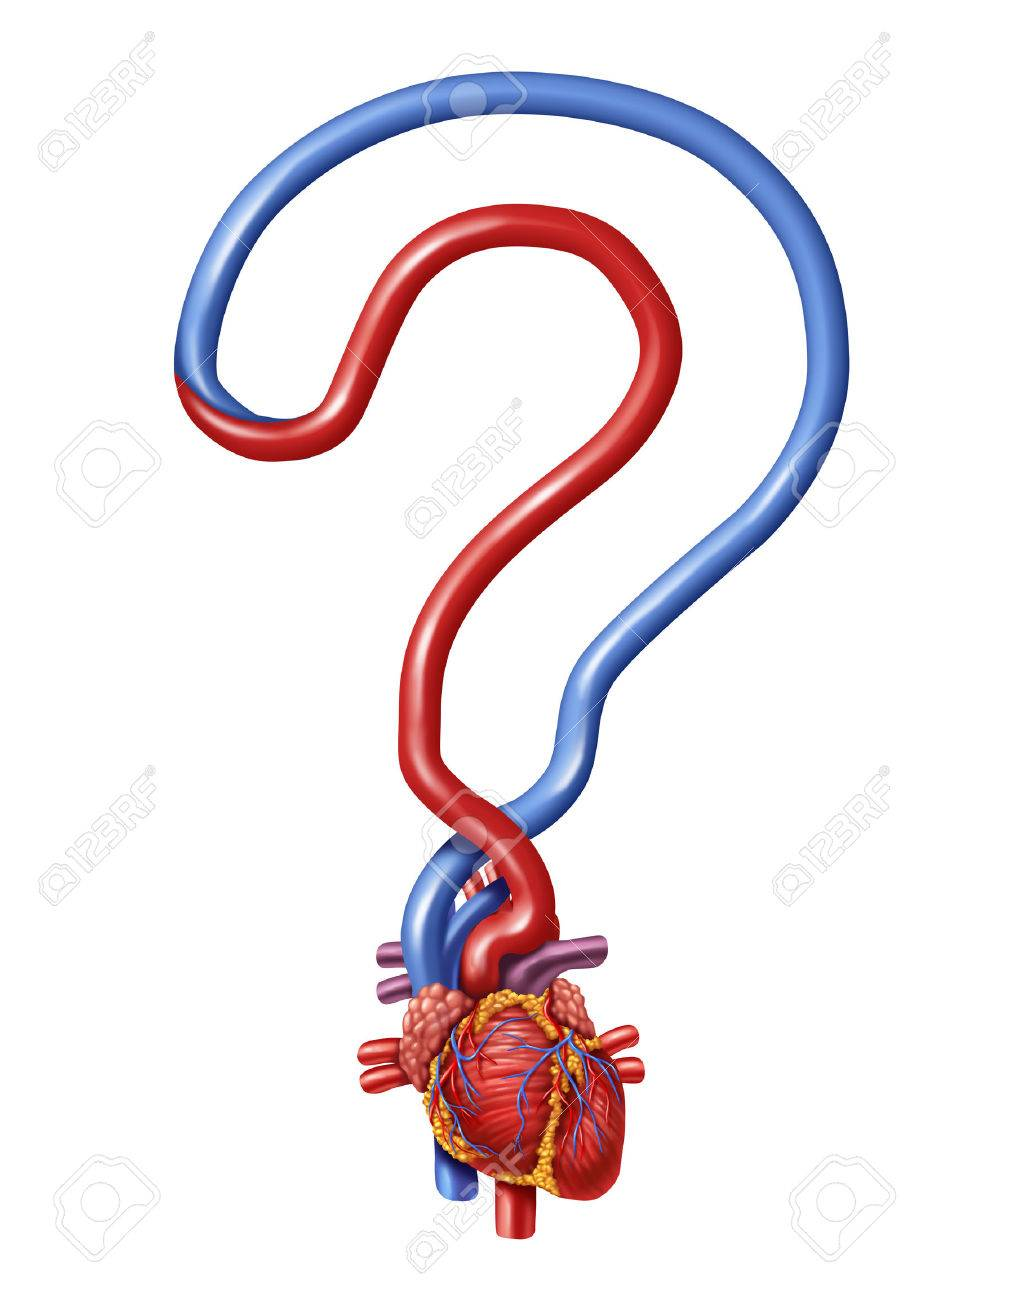 Heart Questions As Human Anatomy For Pumping Blood Shaped As Stock